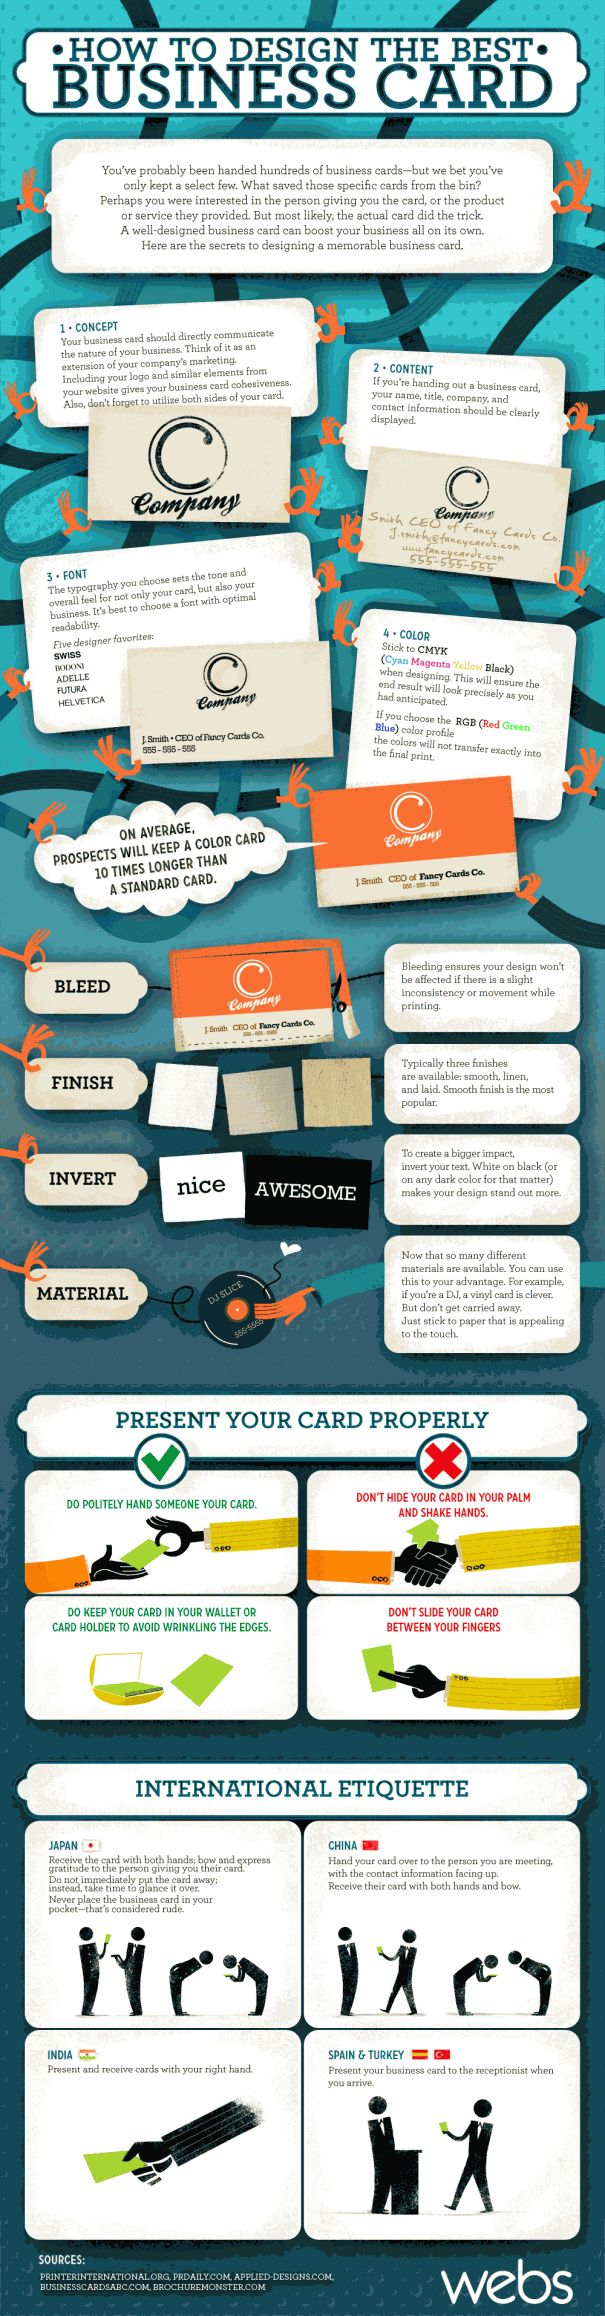 The Ultimate Guide For DIY Business Cards | Craft Maker Pro ...